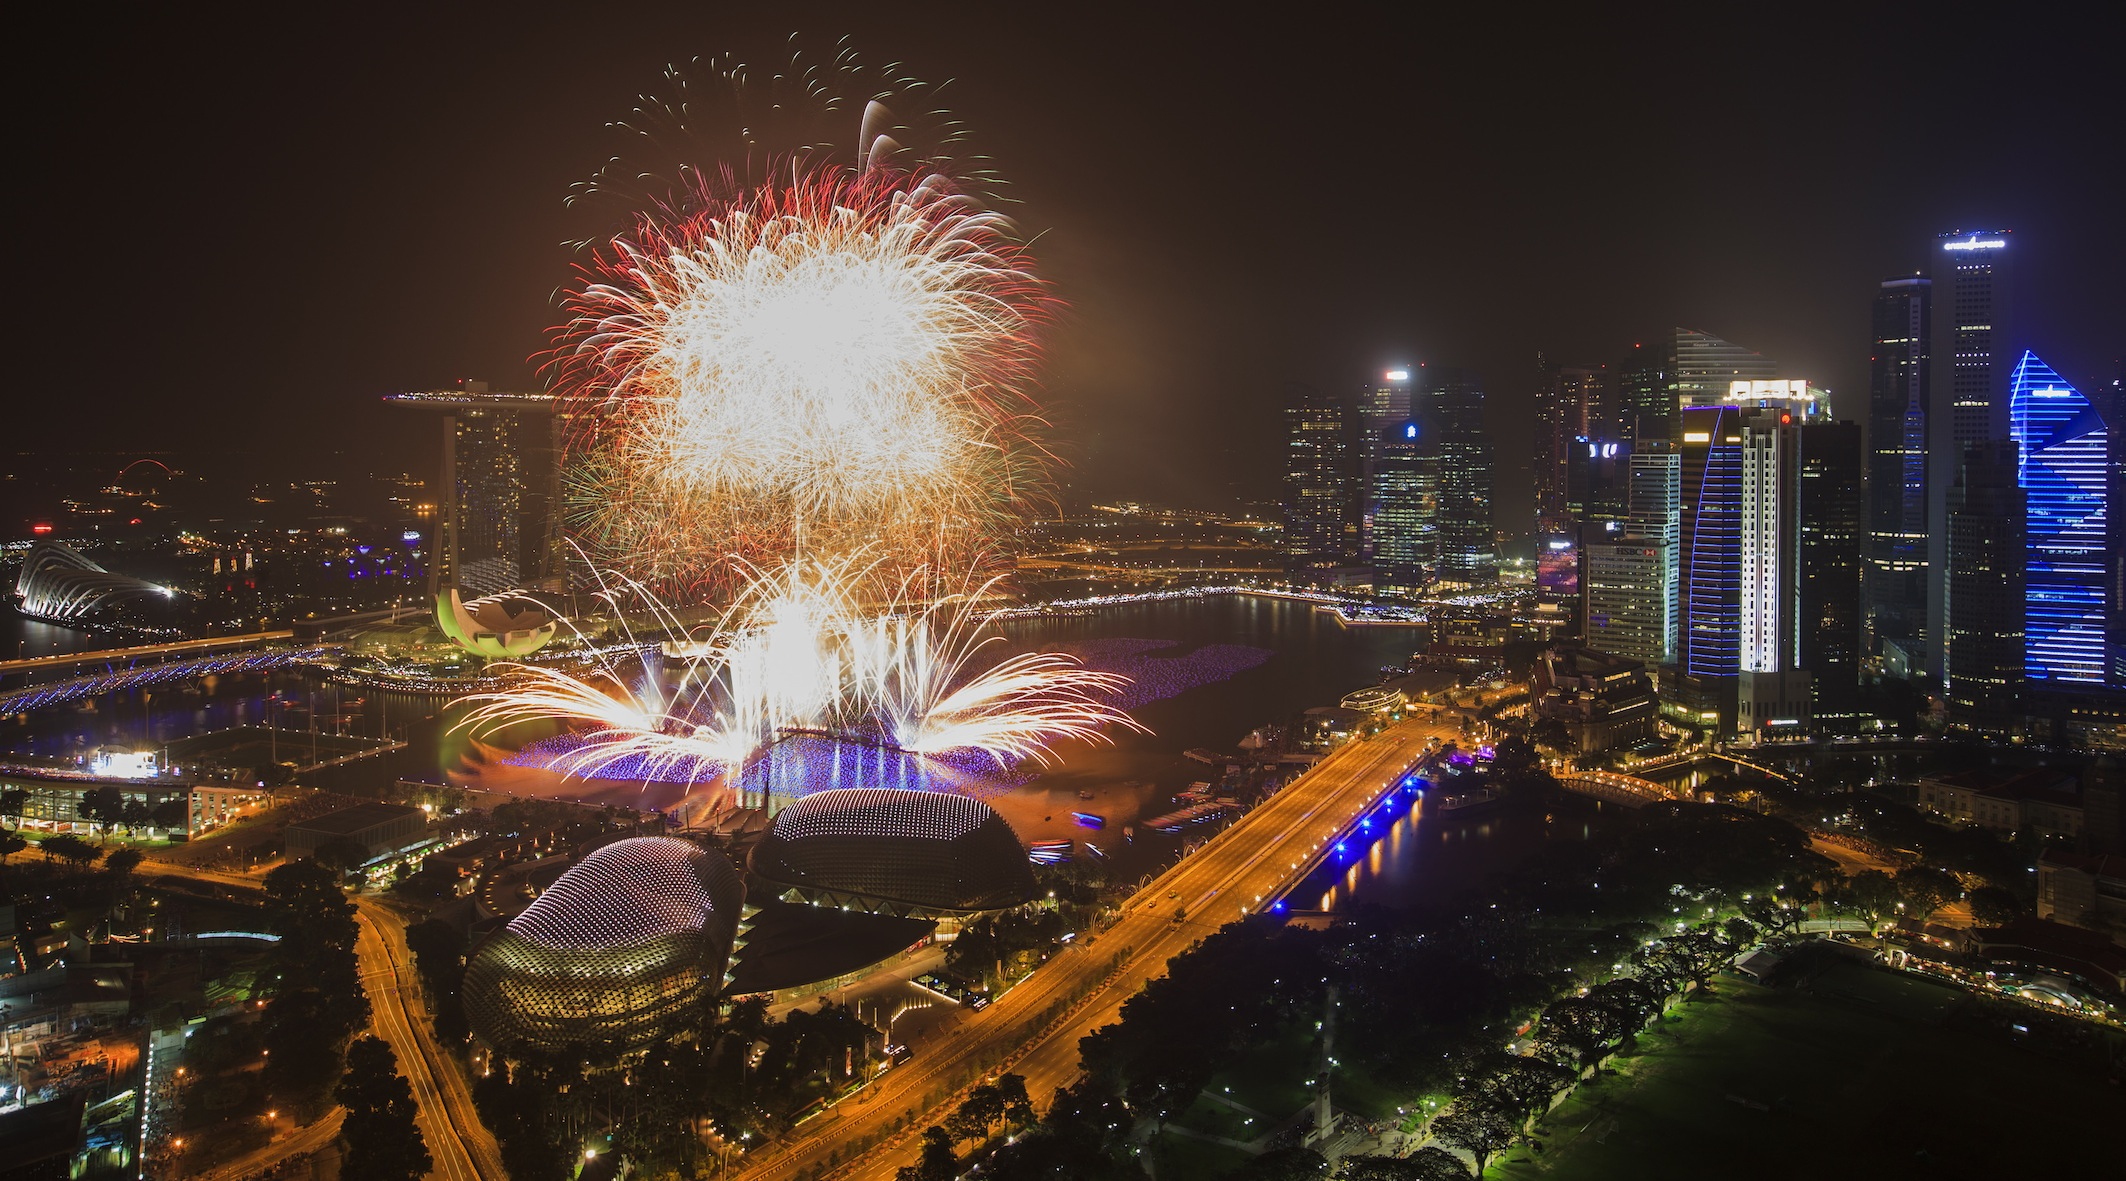 Reasons To Countdown at Marina Bay Singapore 2015